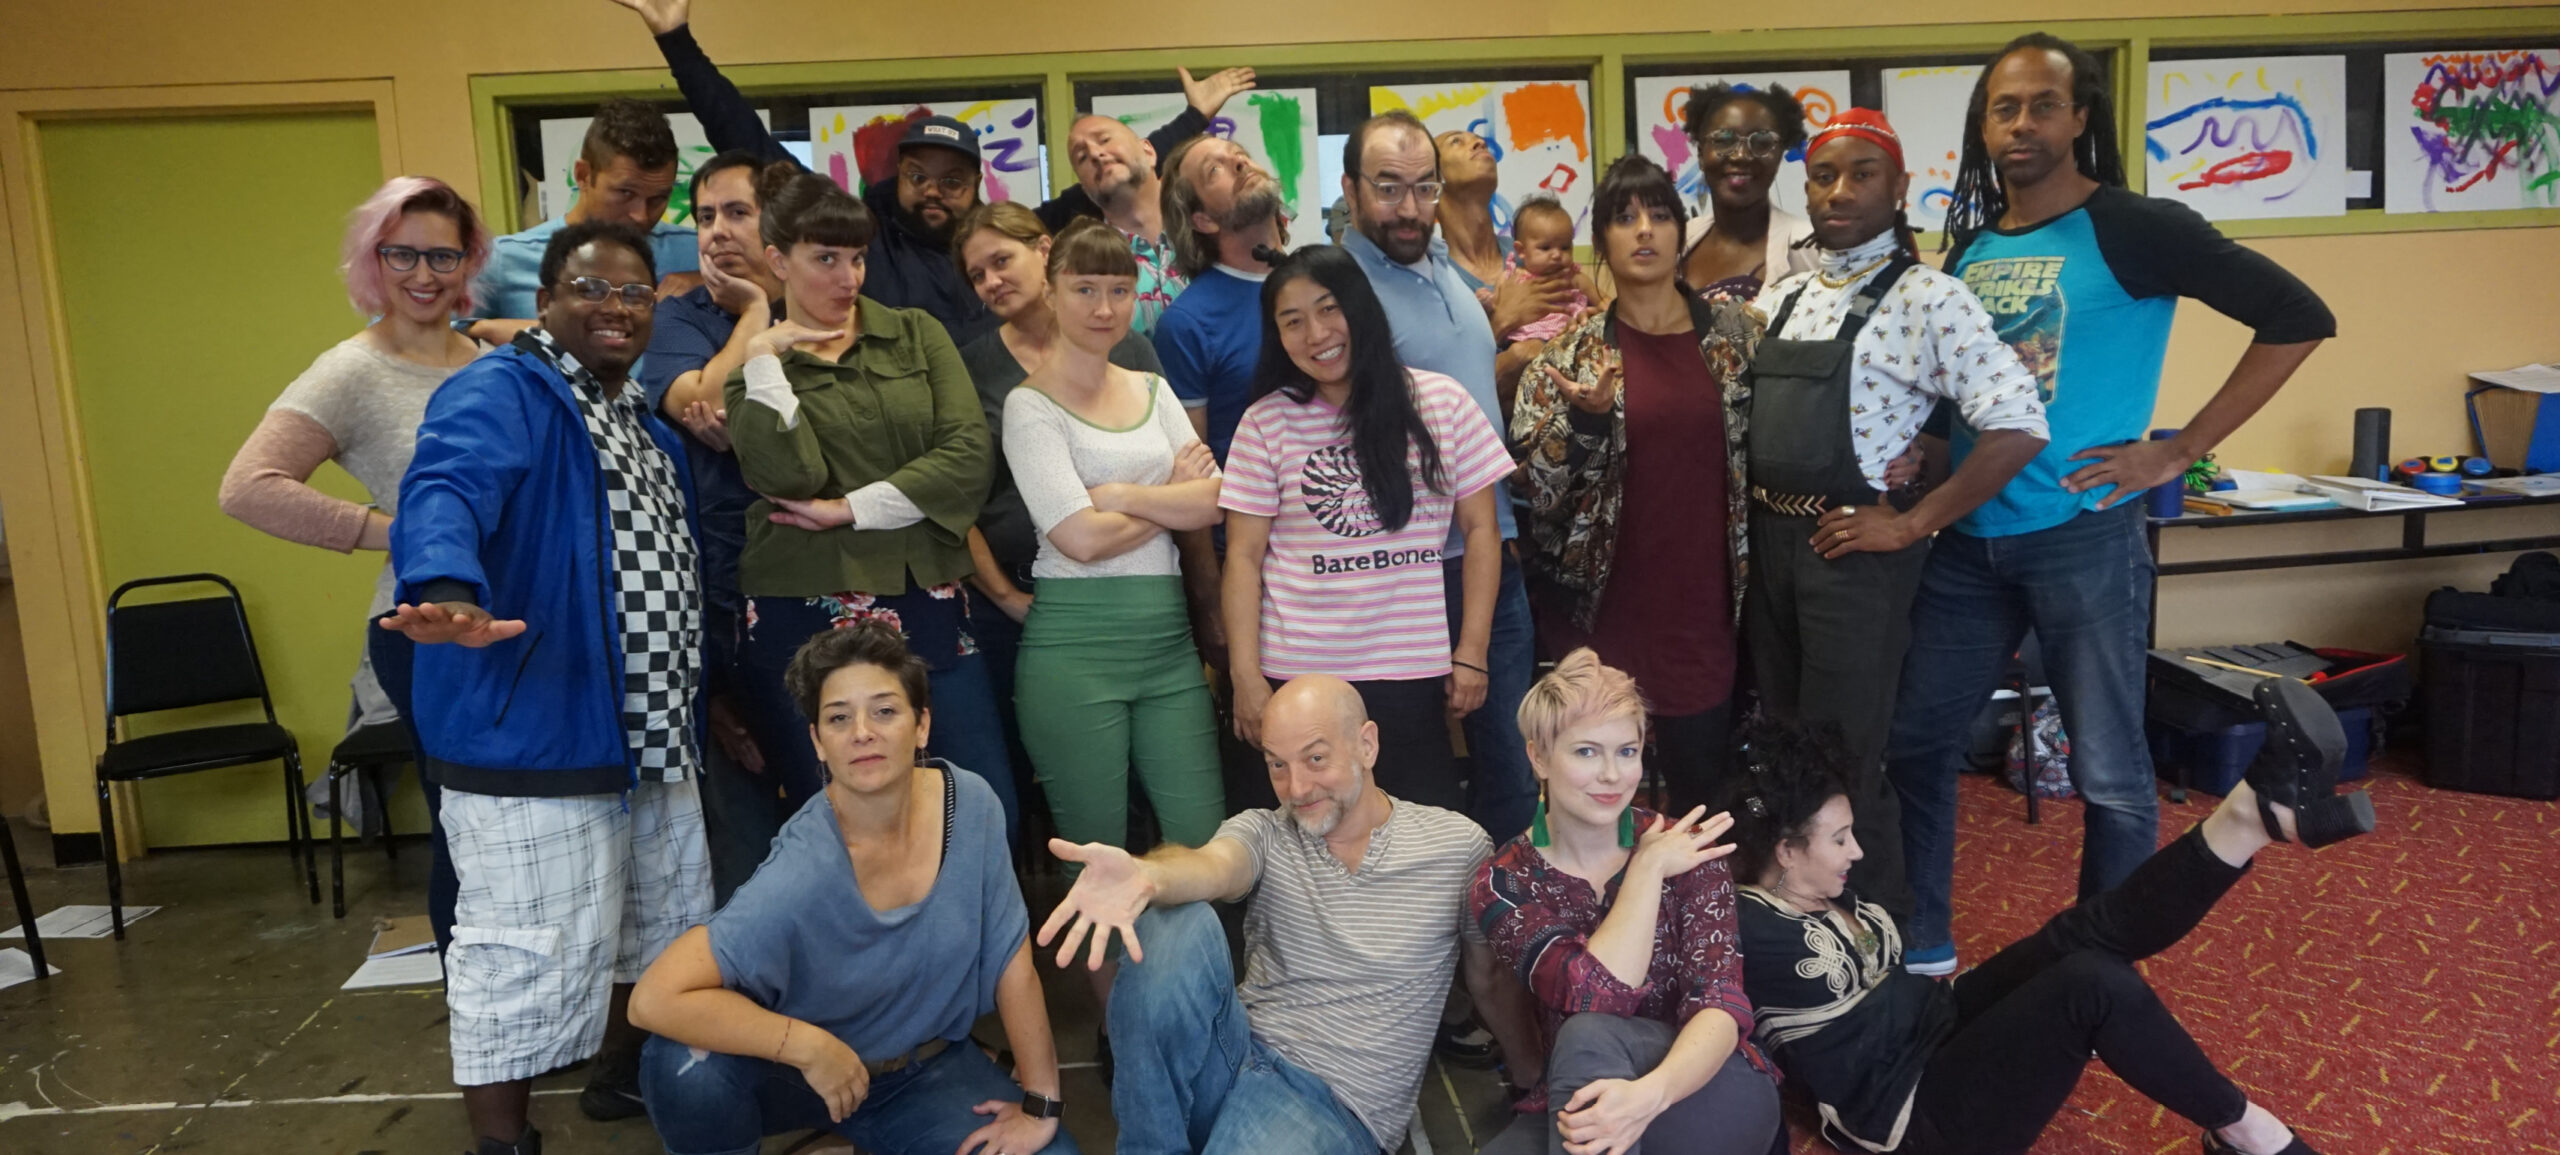 Upstream Arts Teaching Artists and Staff at Fall Training, 2017